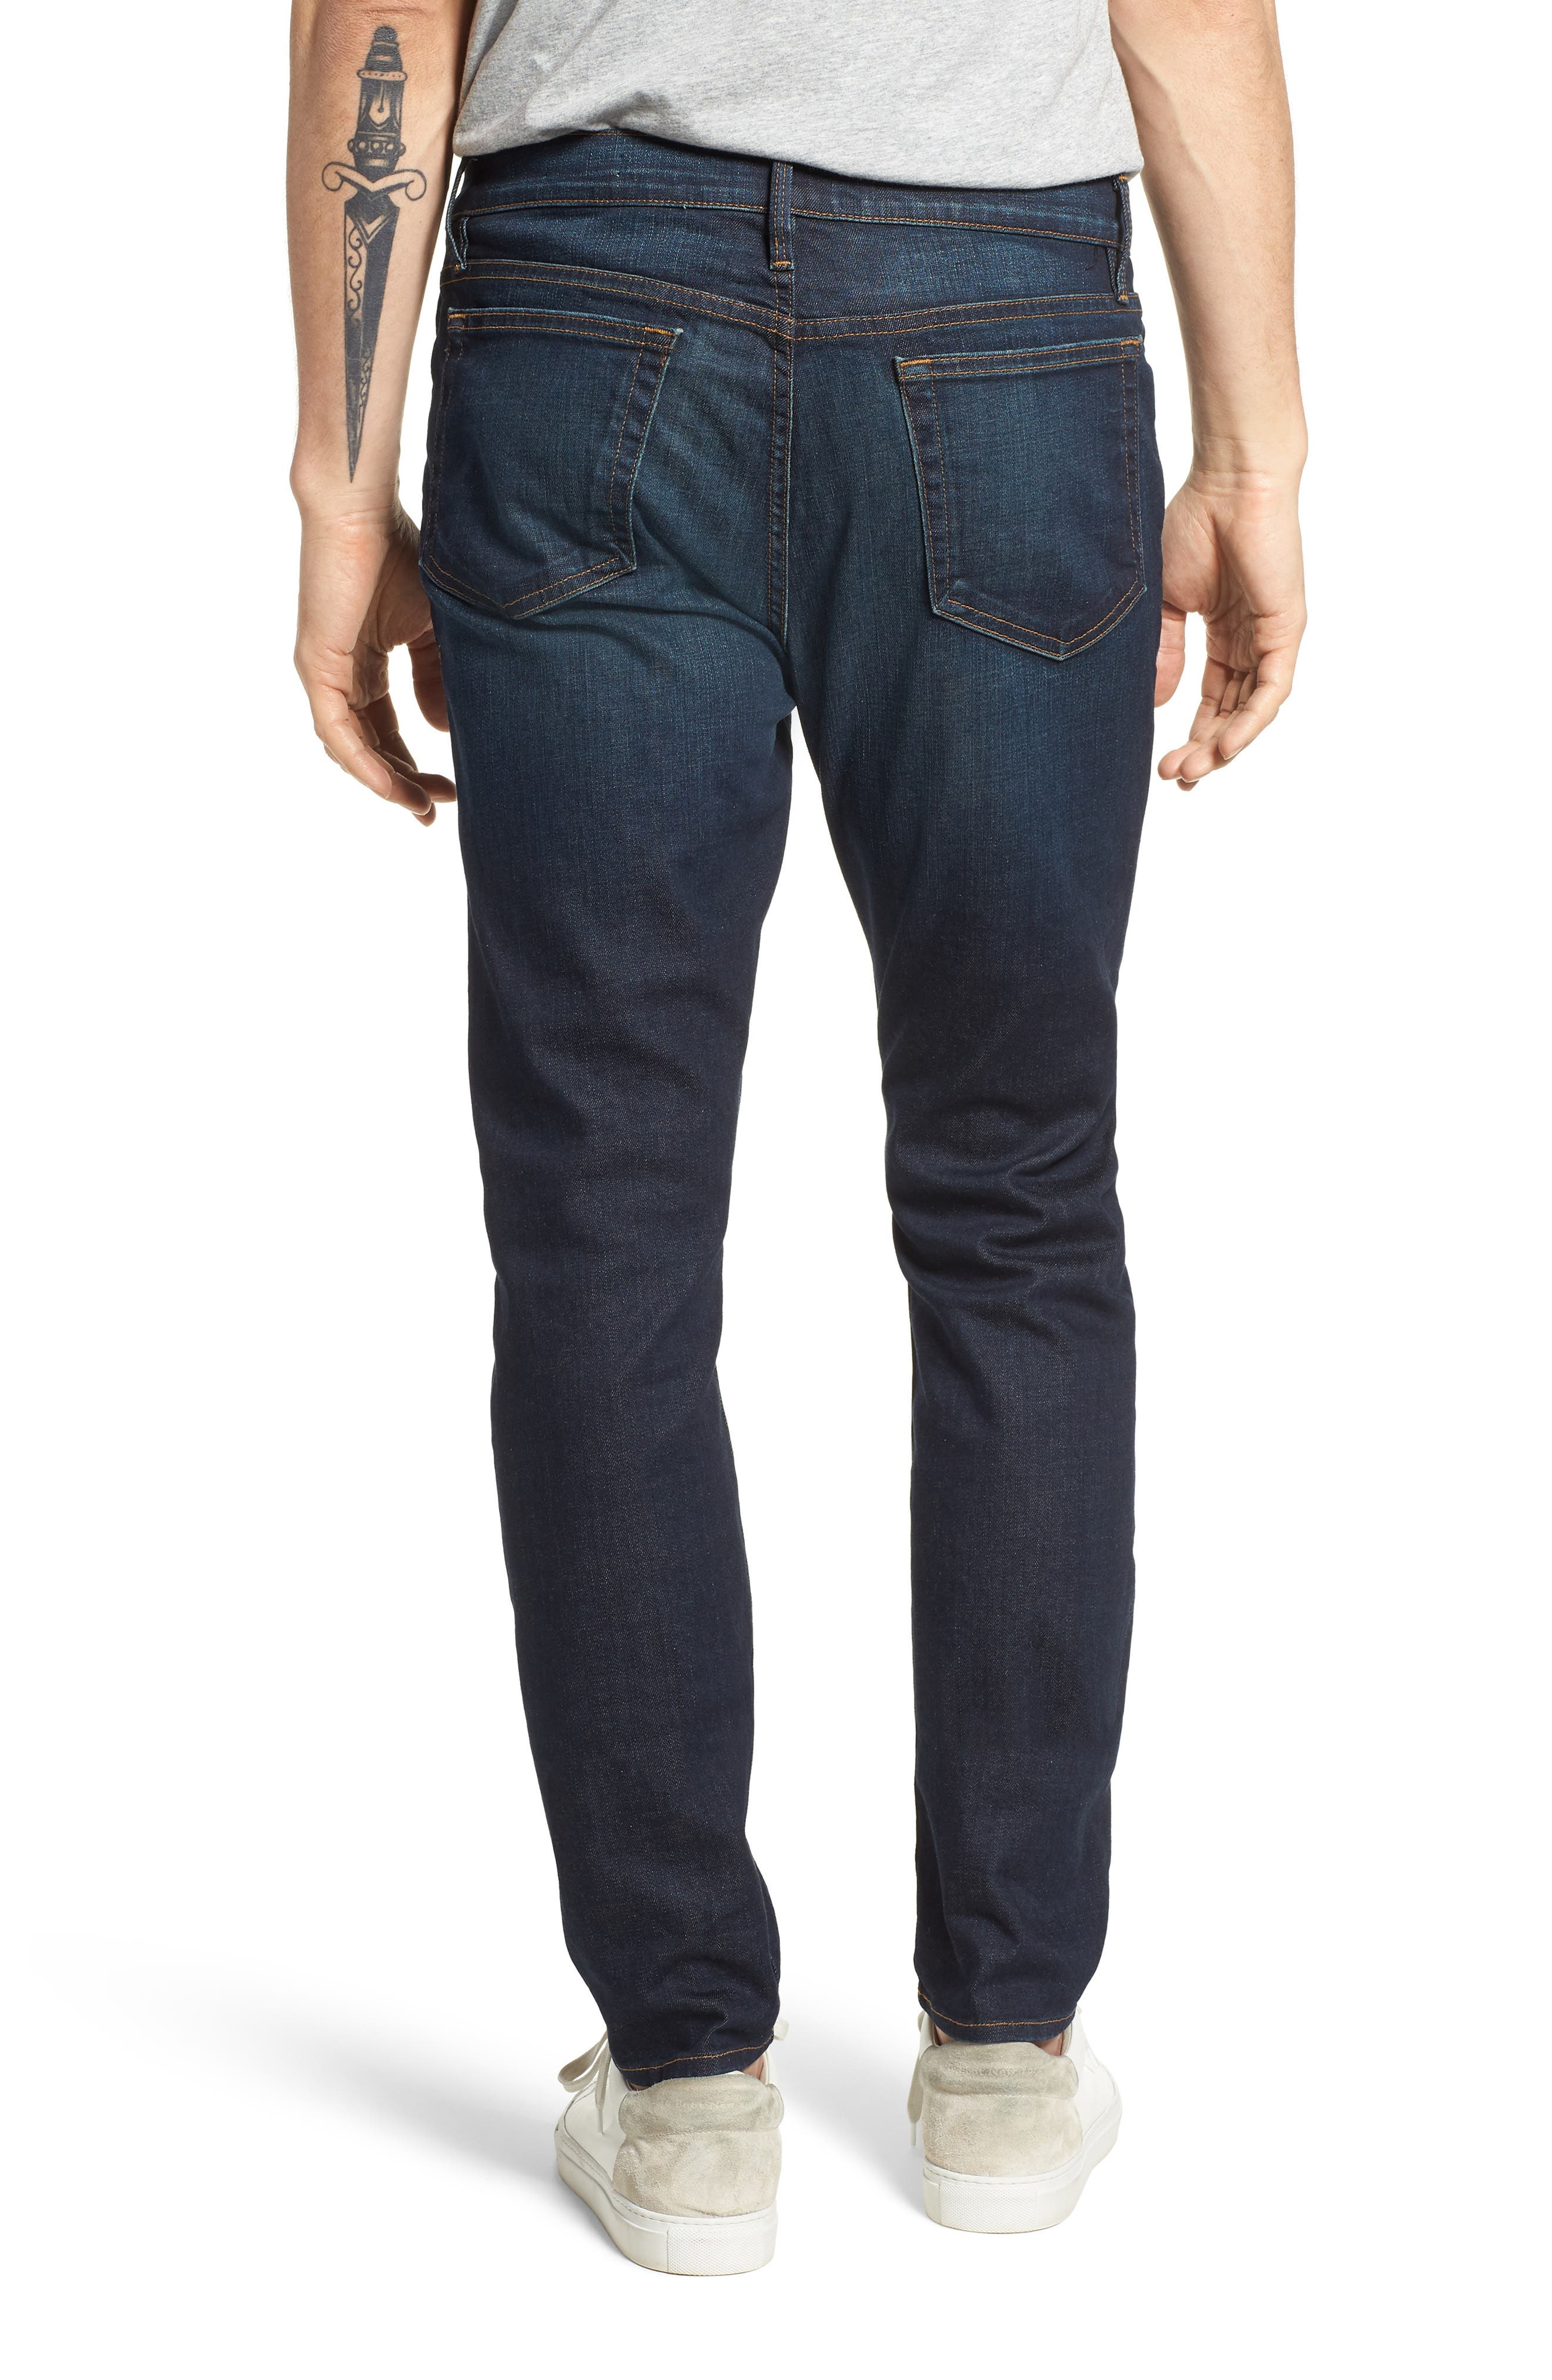 L'Homme Skinny Fit Jeans,                             Alternate thumbnail 3, color,